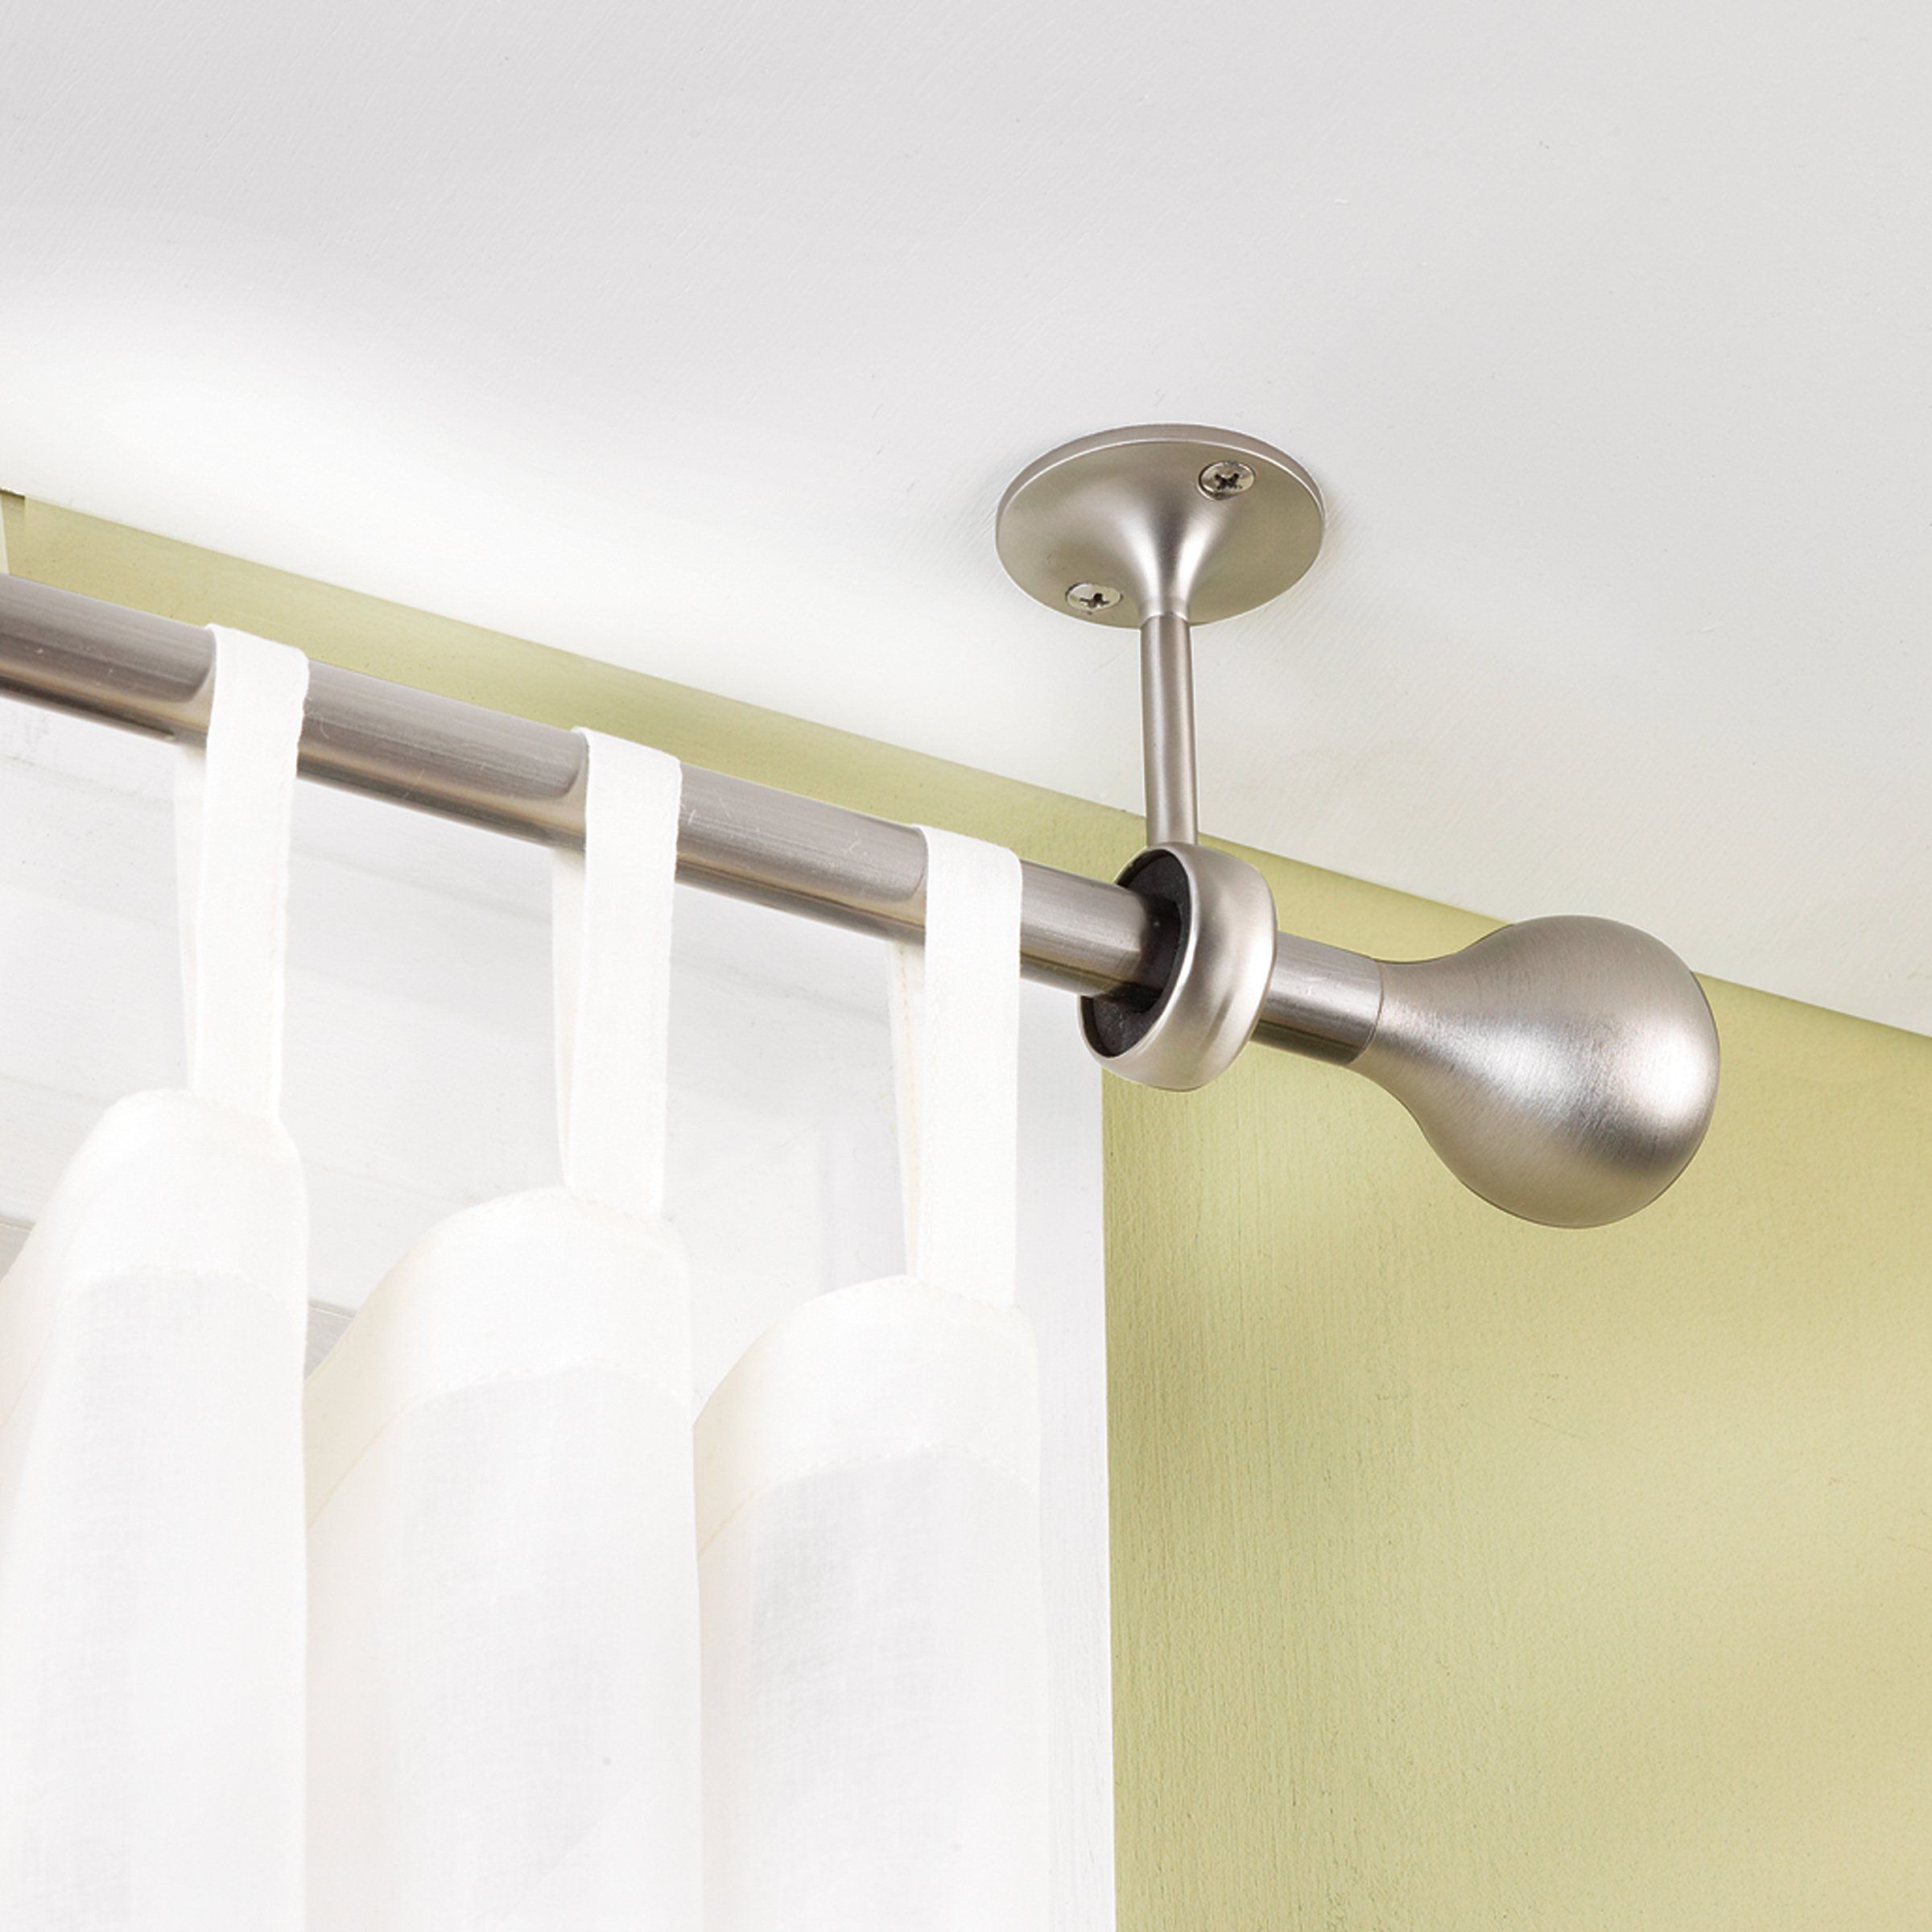 r nickel and rods on hugad curtain rod double twilight umbra black combination